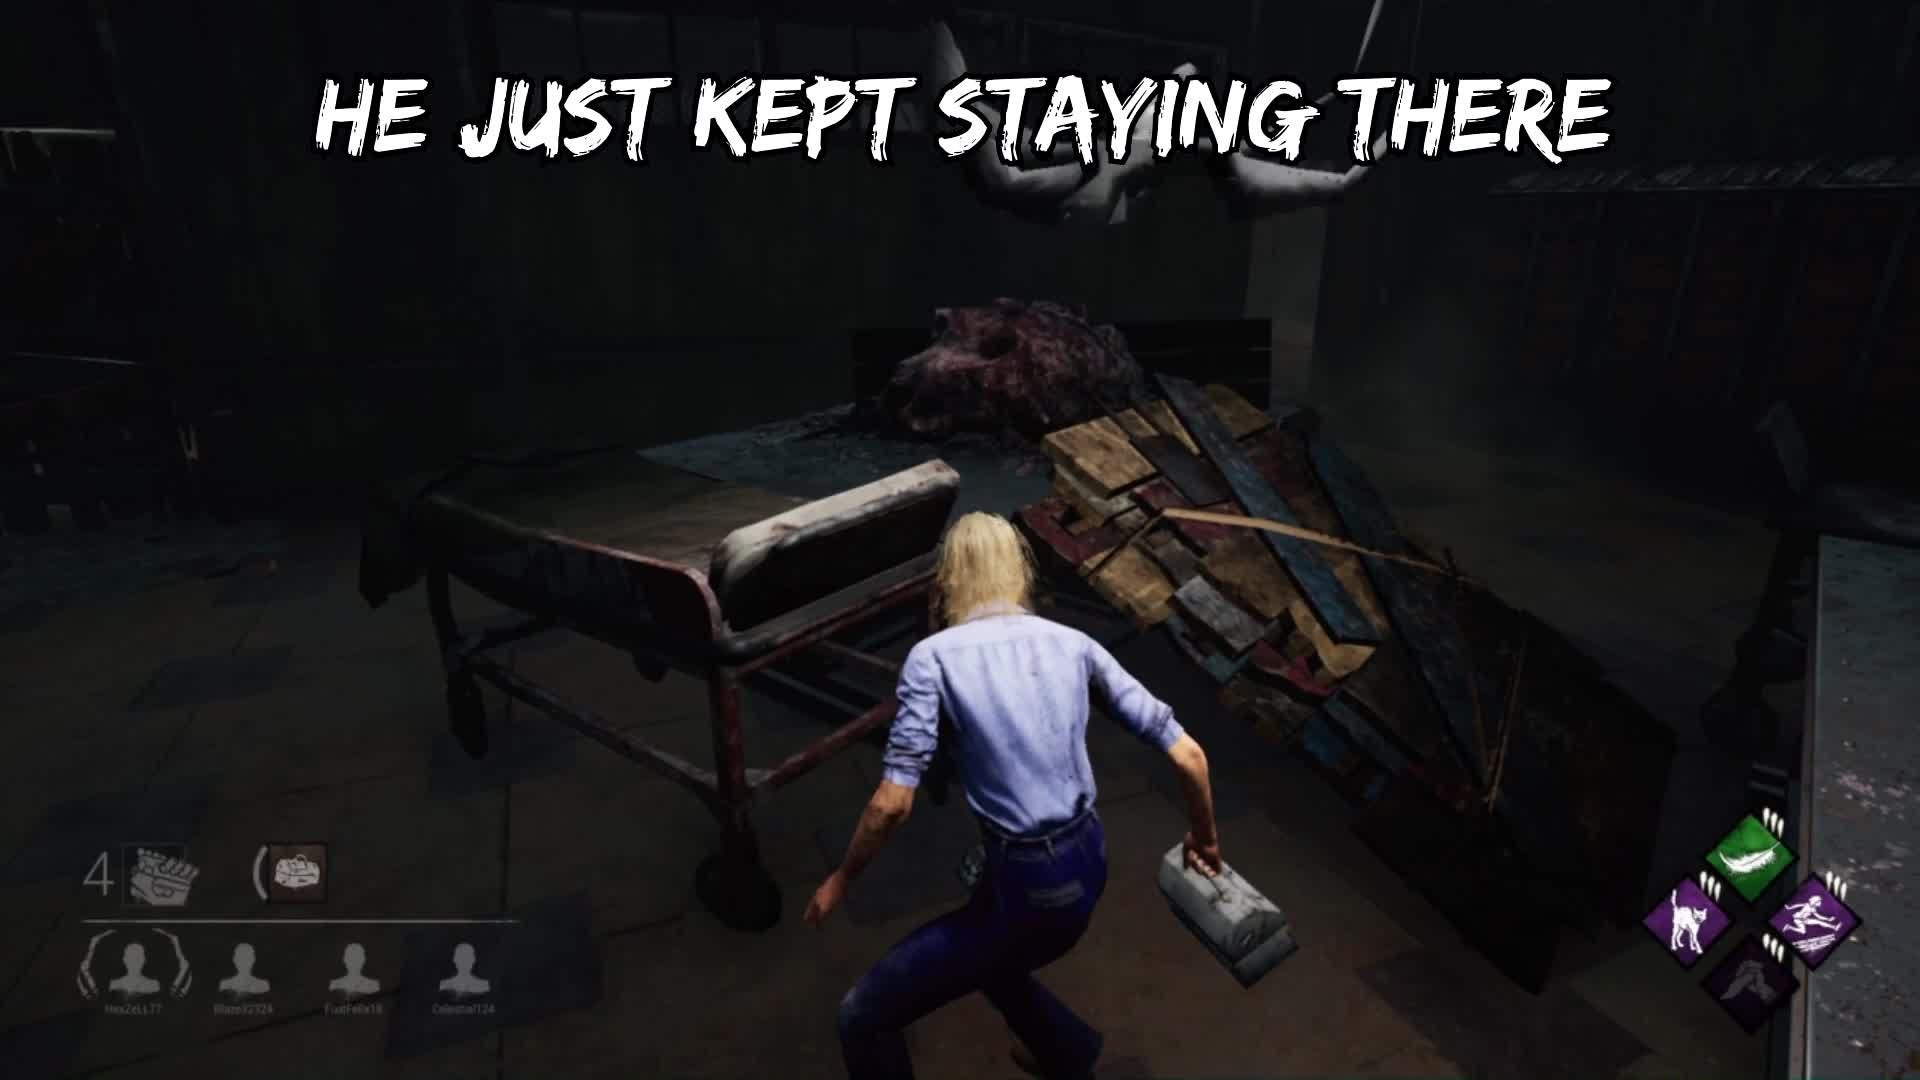 Dead by Daylight: Promotions - Laurie's Toxic, Yet Bizarre Adventure! video cover image 1